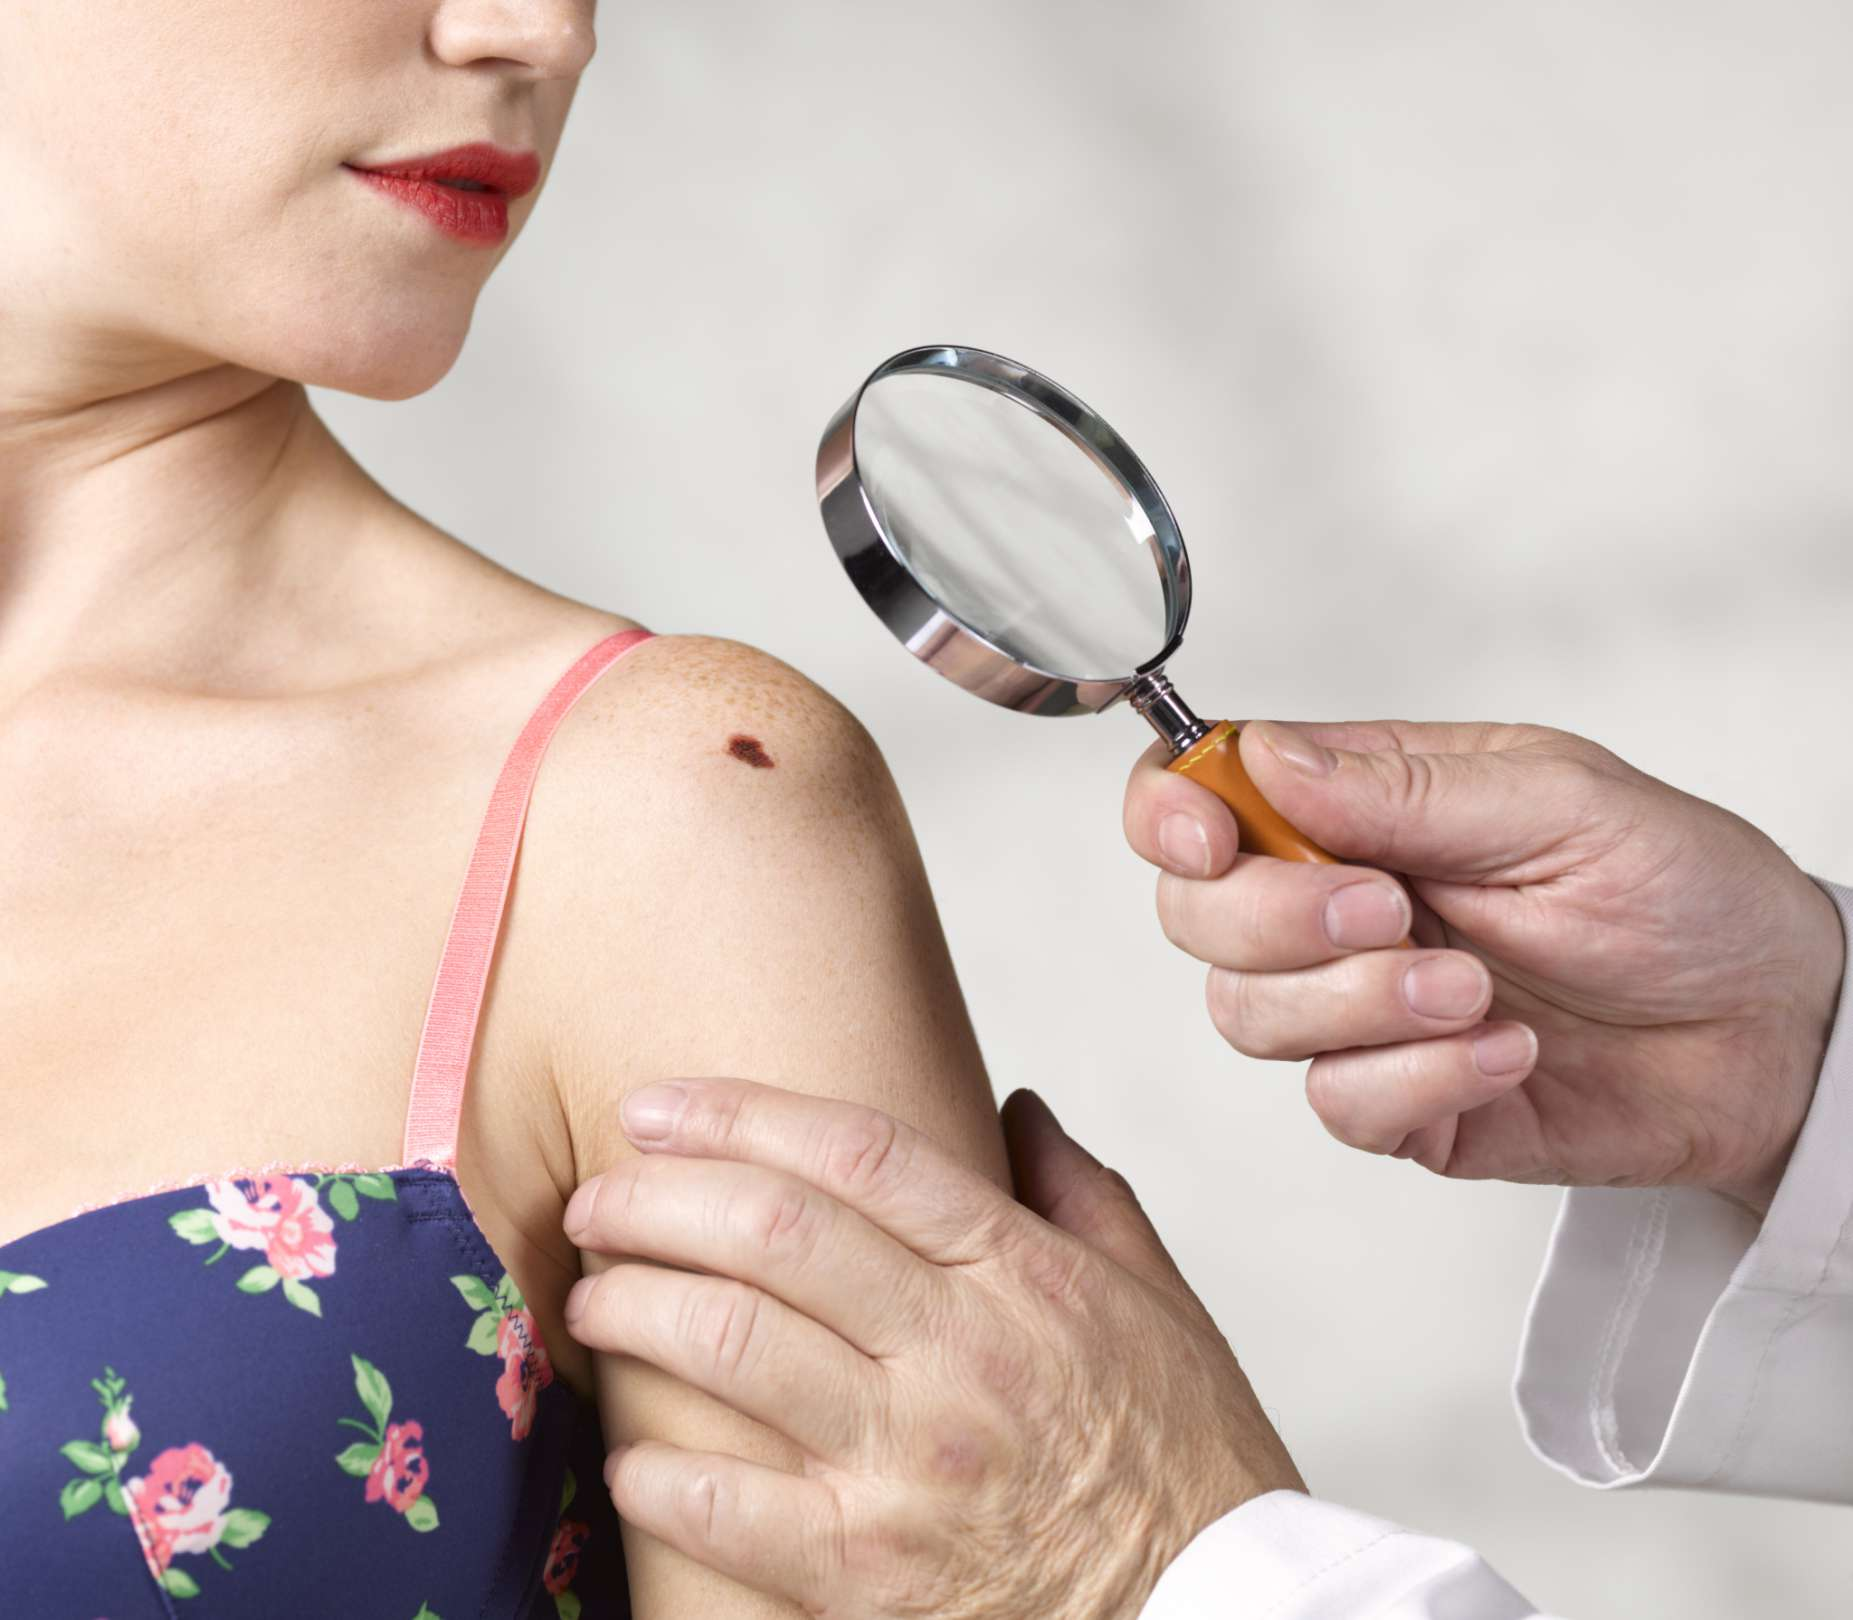 Doctor inspecting mole